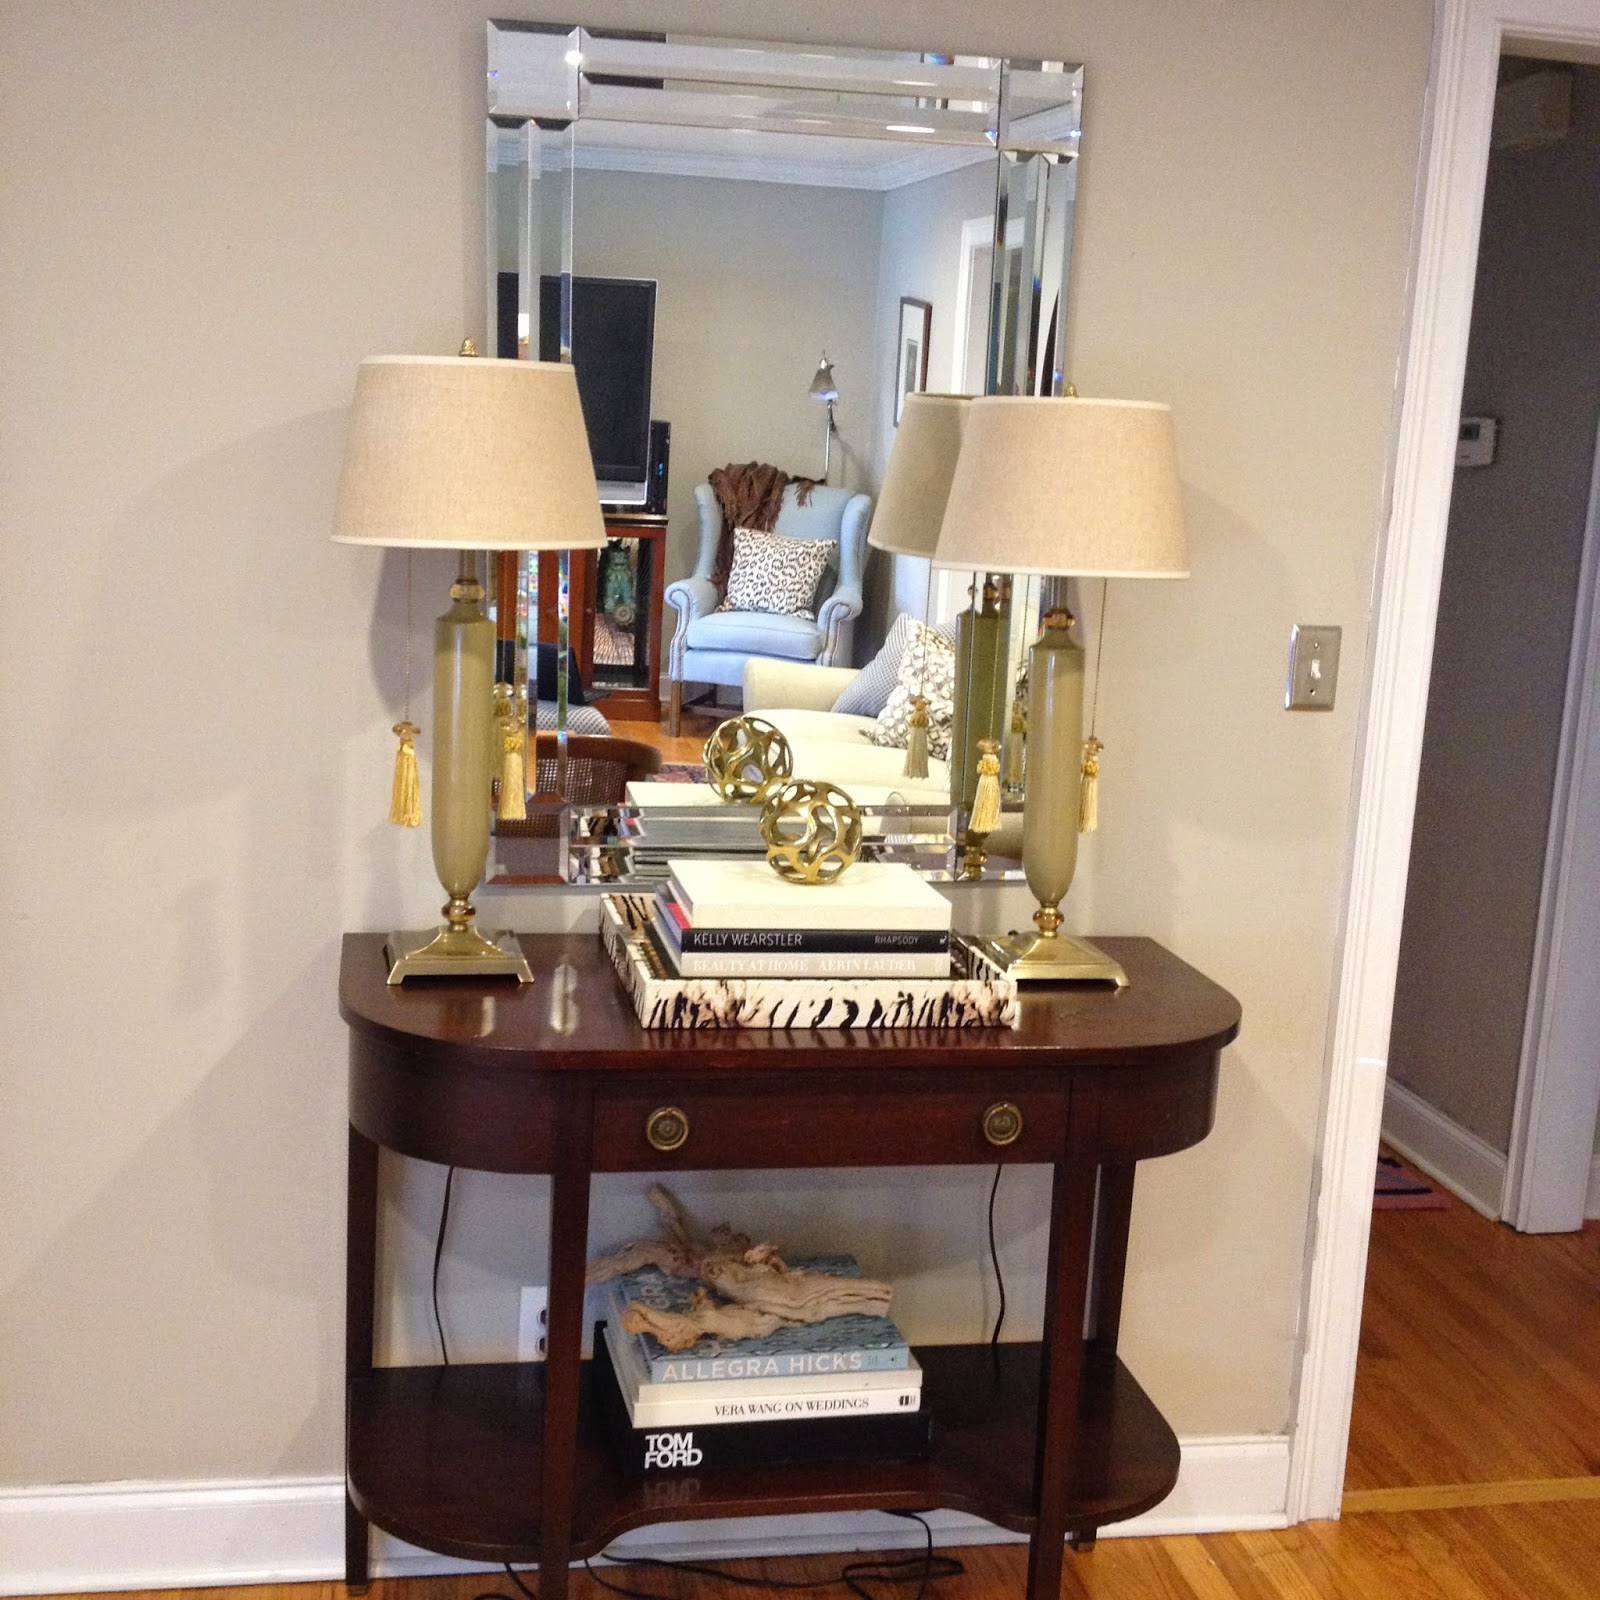 designer bags and dirty diapers: Home Tour The Den ...